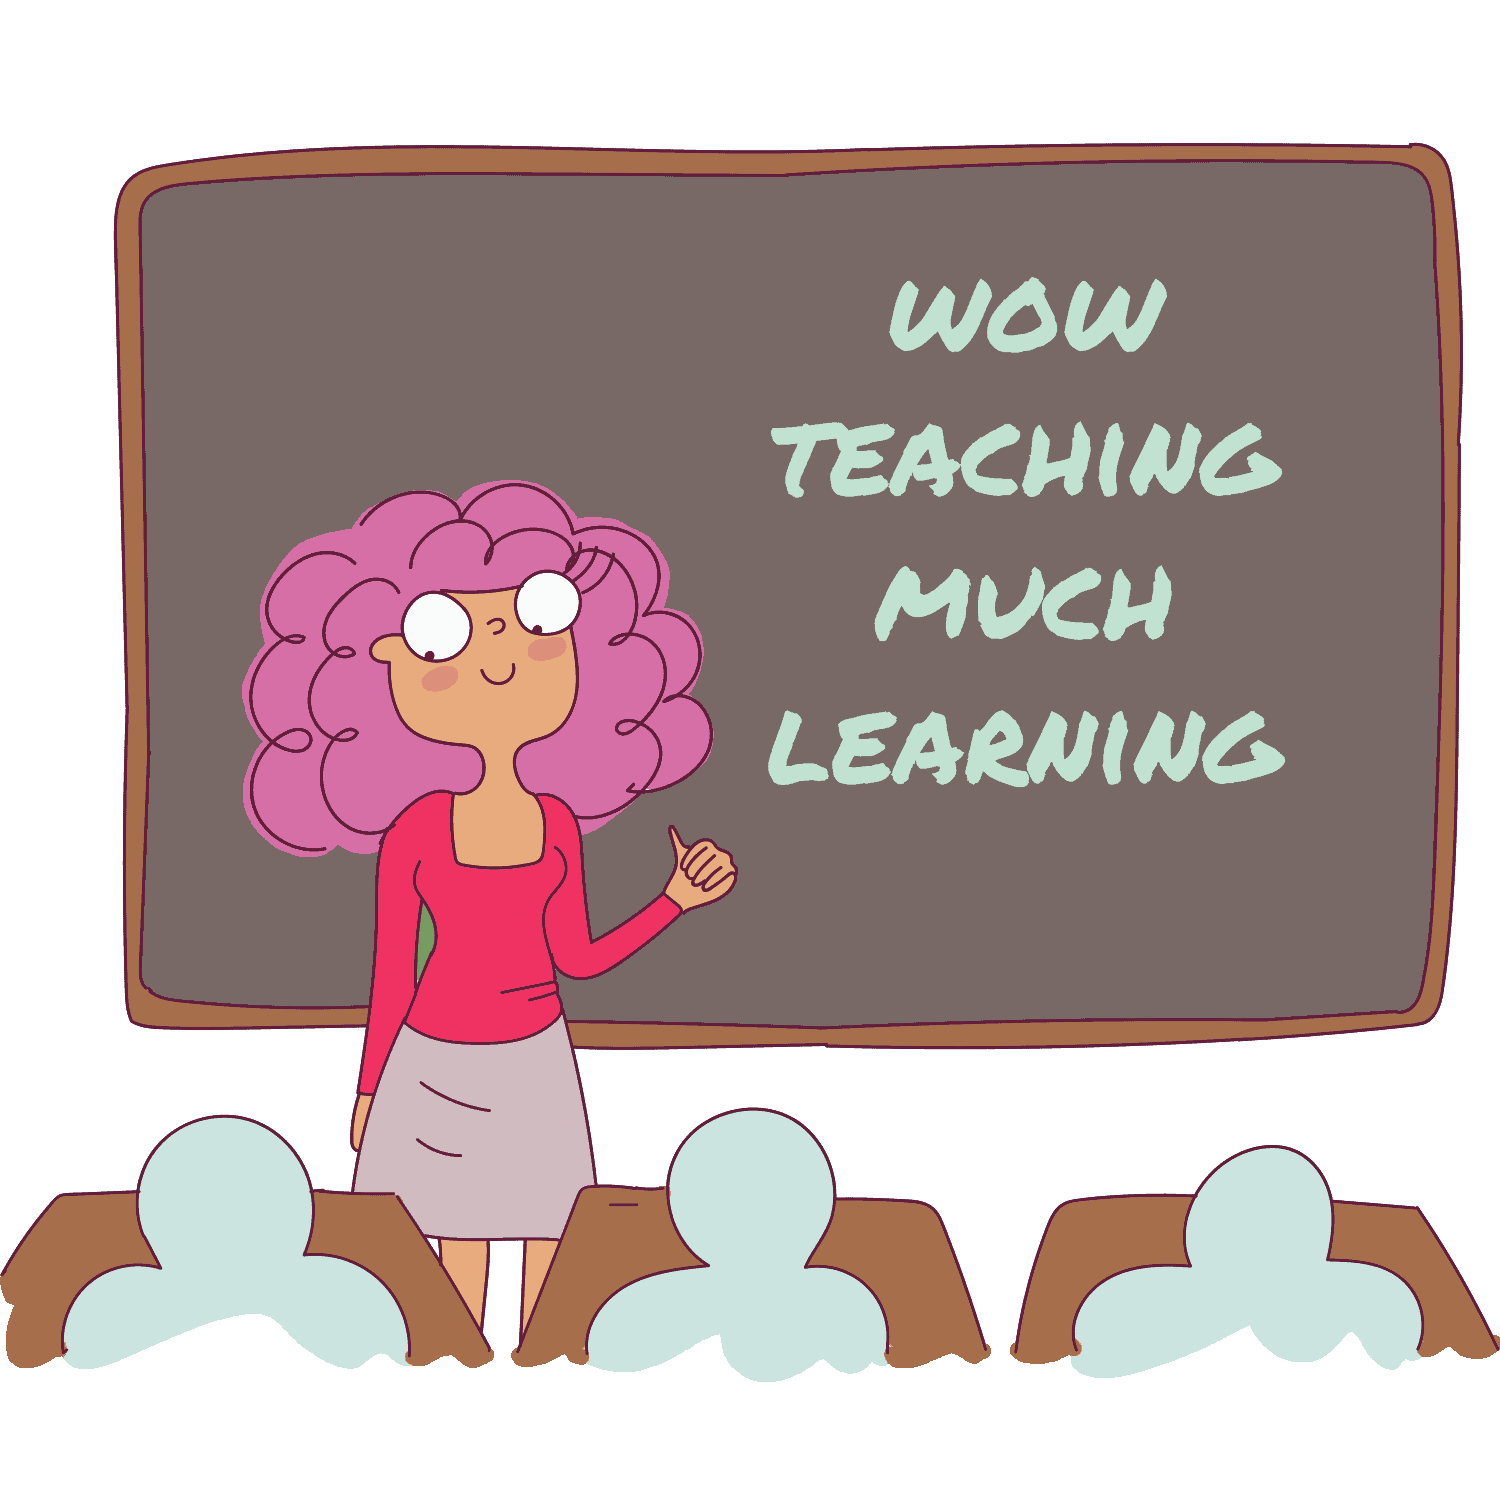 Since, I have lots of experience with online businesses and I'm creative, I've combined my love for teaching and creating into my Blog.